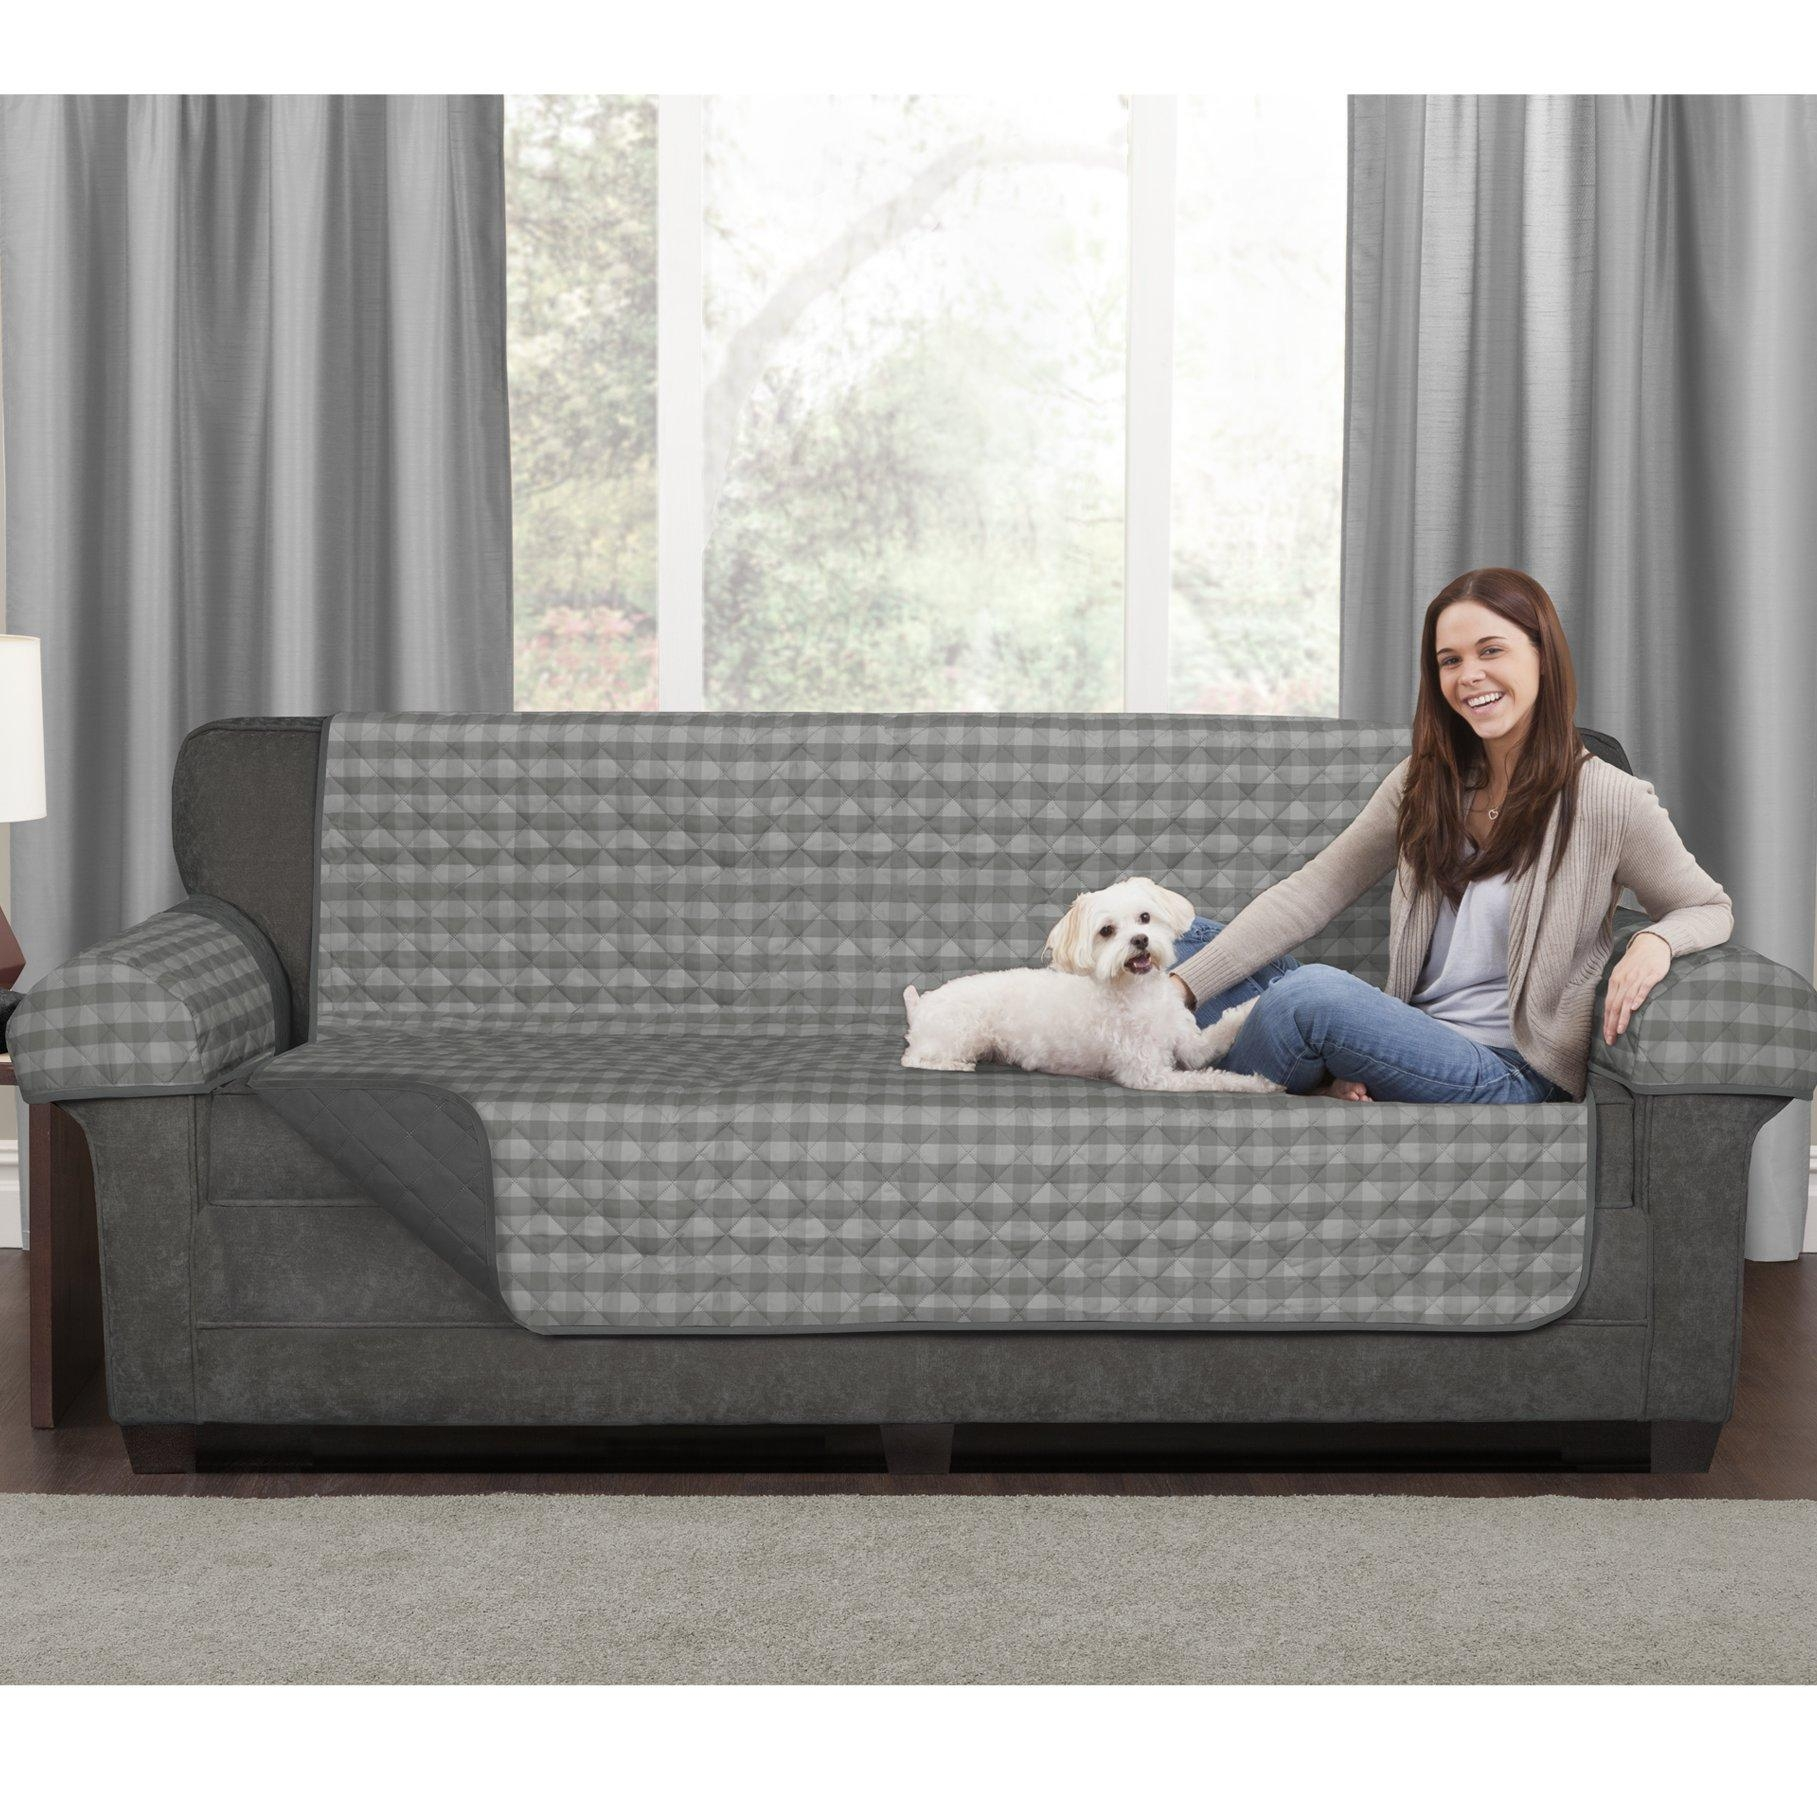 Maytex Buffalo Check 3 Piece Reversible Polyester Sofa Slipcover For 3 Piece Slipcover Sets (Image 13 of 20)